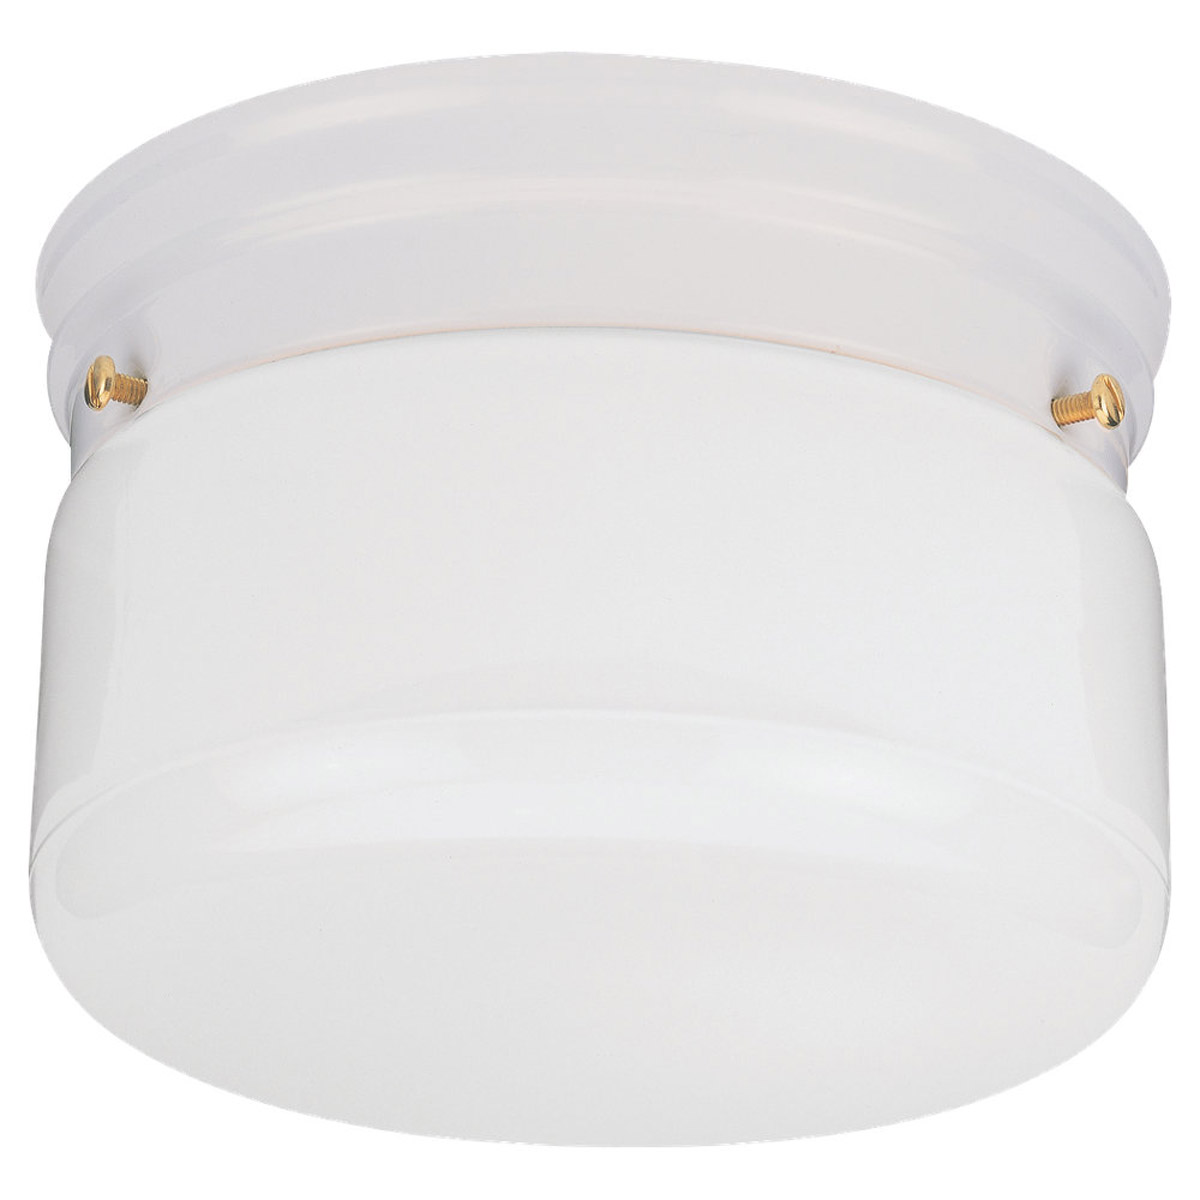 Sea Gull Lighting Economy Flush Mount 2 Light Flush Mount in White 5322-15 photo